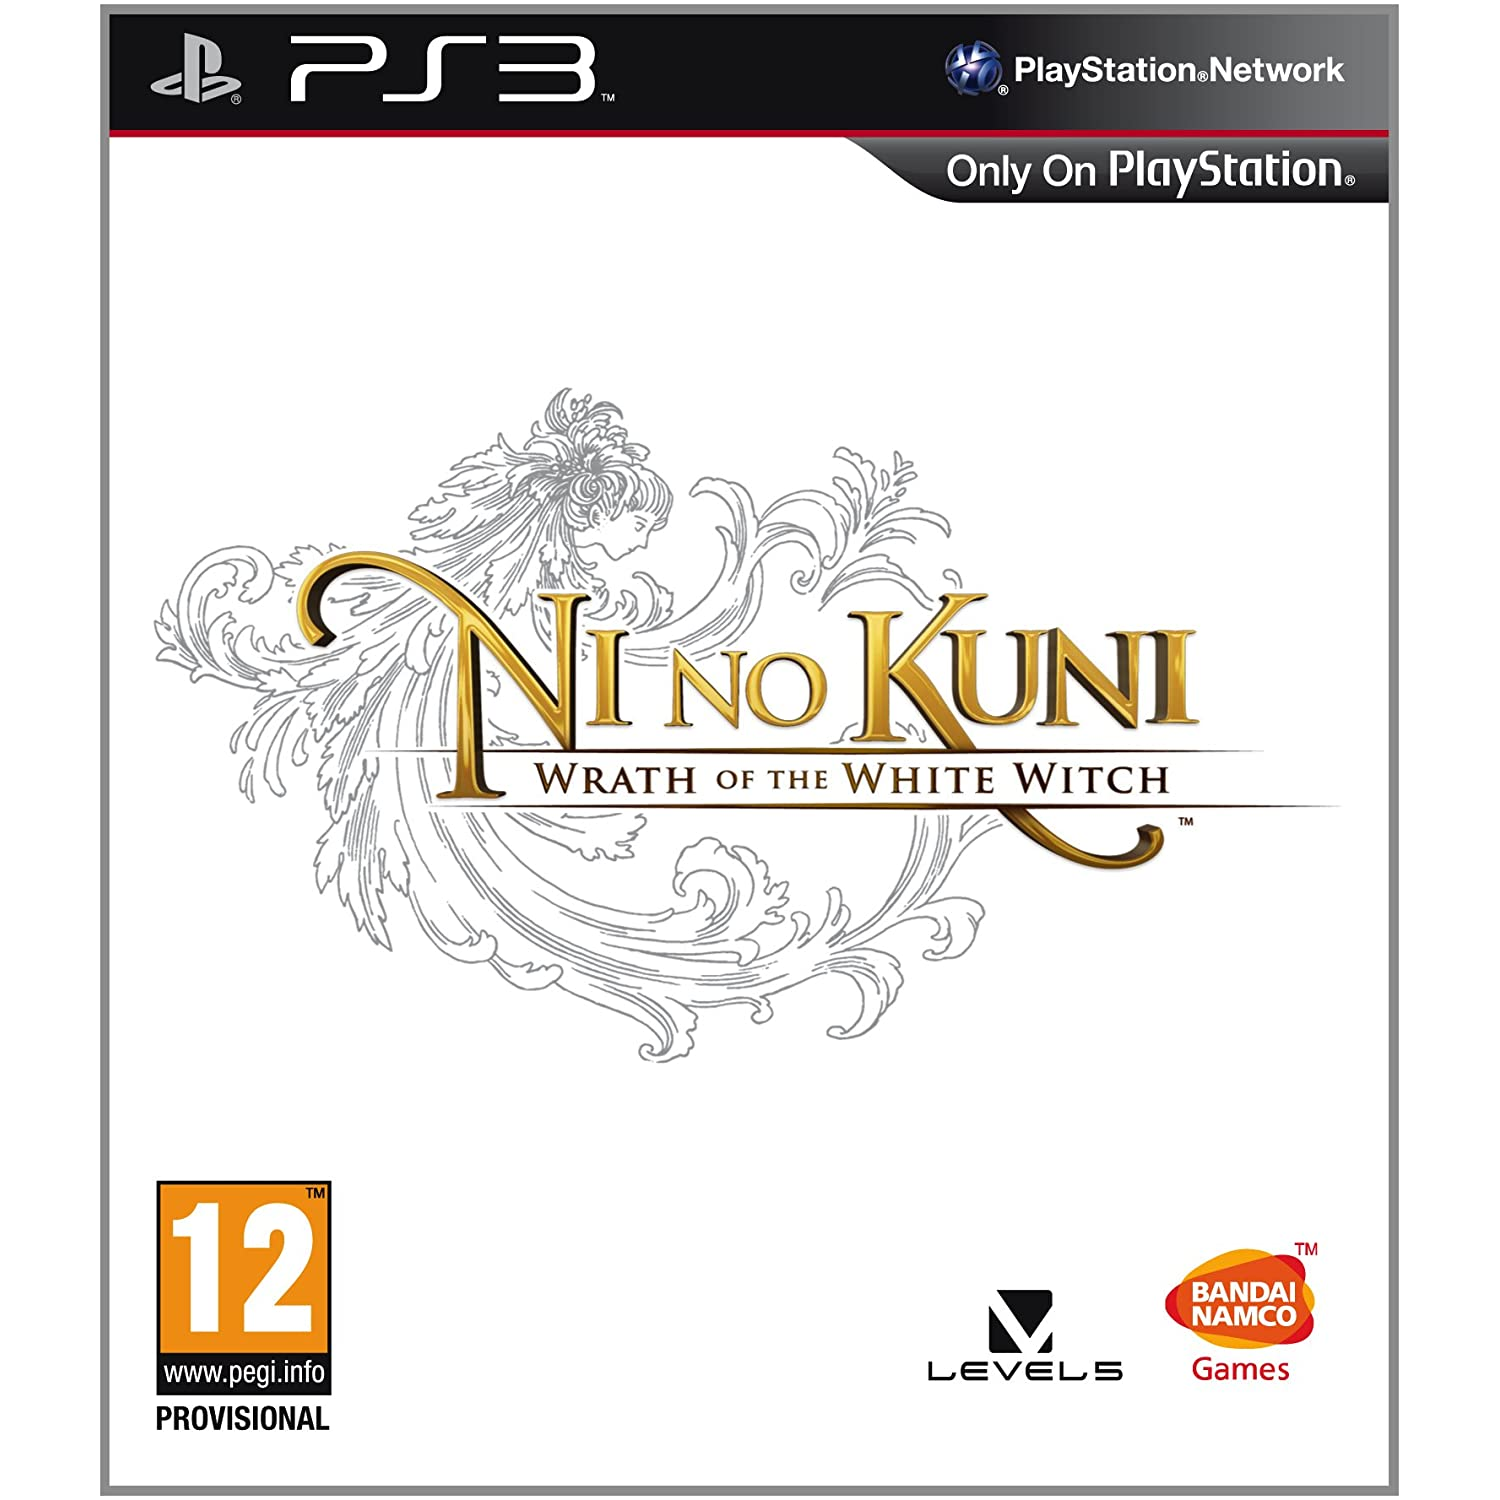 The Ni No Kuni box